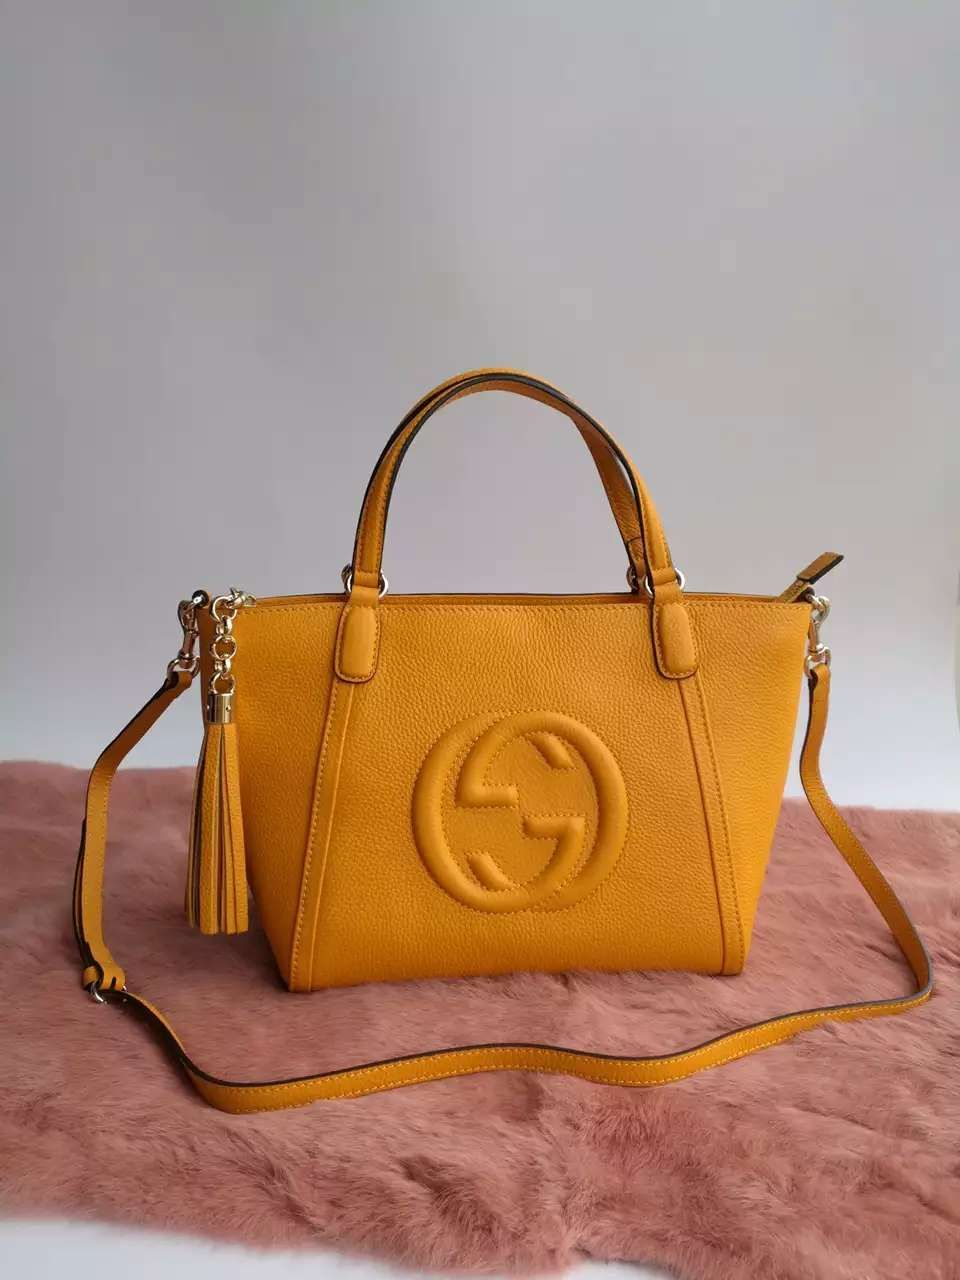 gucci Bag, ID : 40278(FORSALE:a@yybags.com), gucci accessories bags, gucci sale handbags, gucci which country, gucci key wallet, gucci handbags for cheap, gucci online store, gucci external frame backpack, gucci pocket briefcase, gucci brown briefcase, gucci beach bag, head designer for gucci, authentic gucci, site gucci #gucciBag #gucci #gucci #home